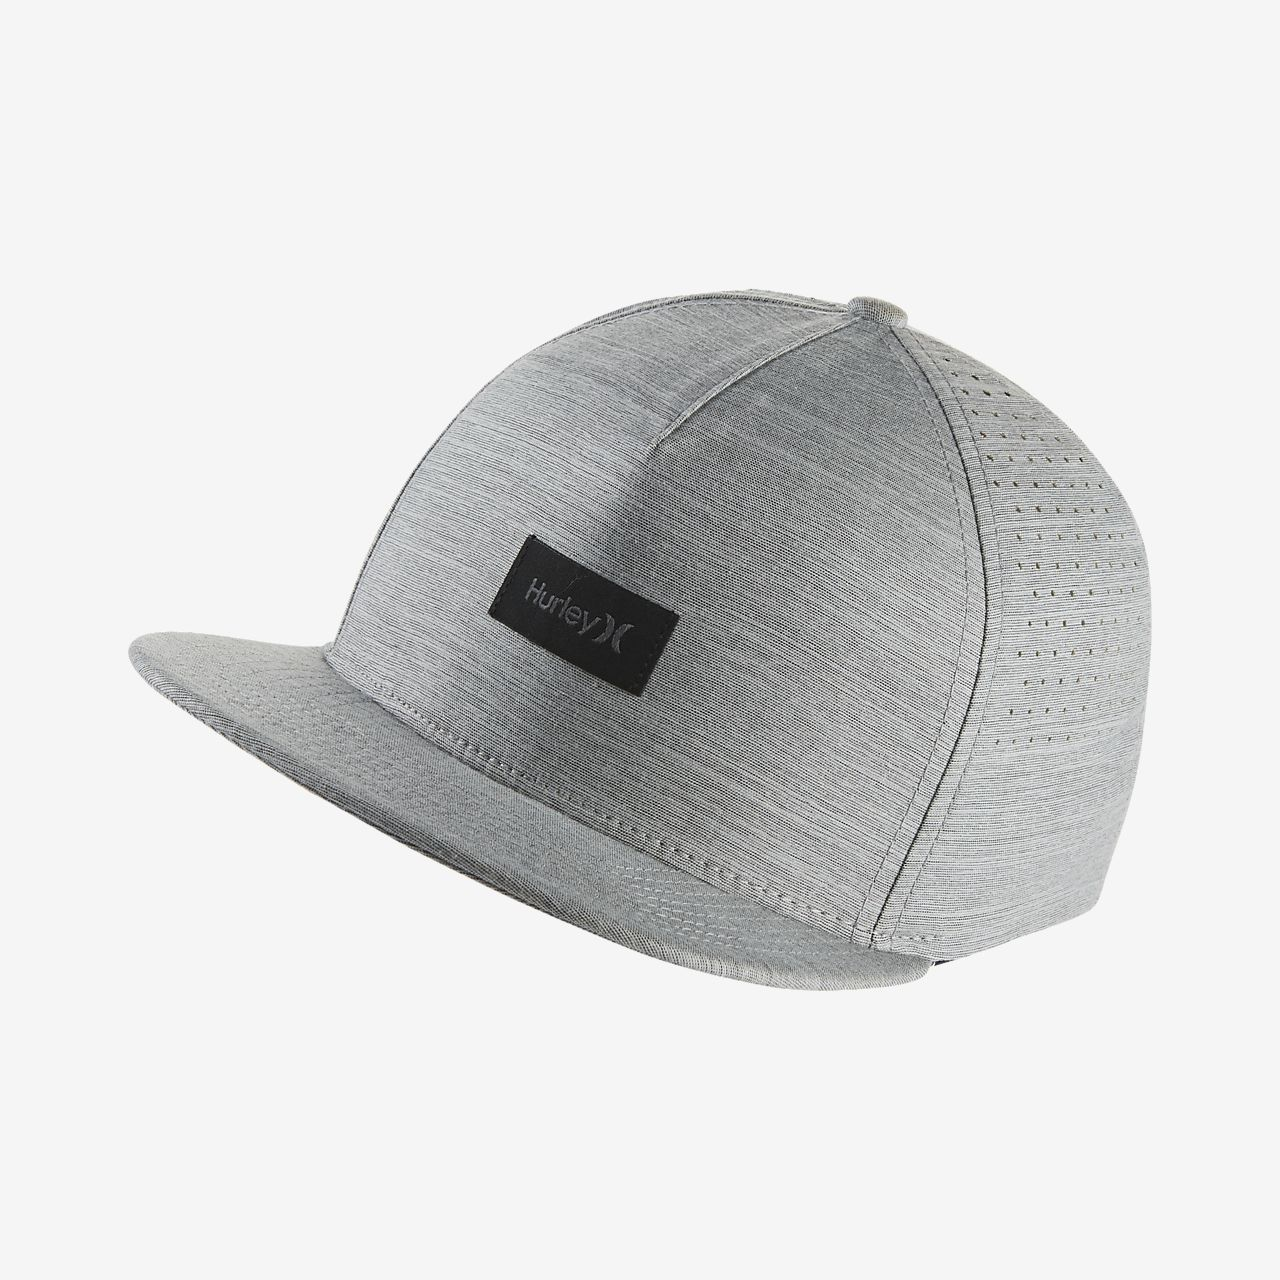 Hurley Dri-FIT Staple Adjustable Hat. Nike.com AU a1aaca4c55c